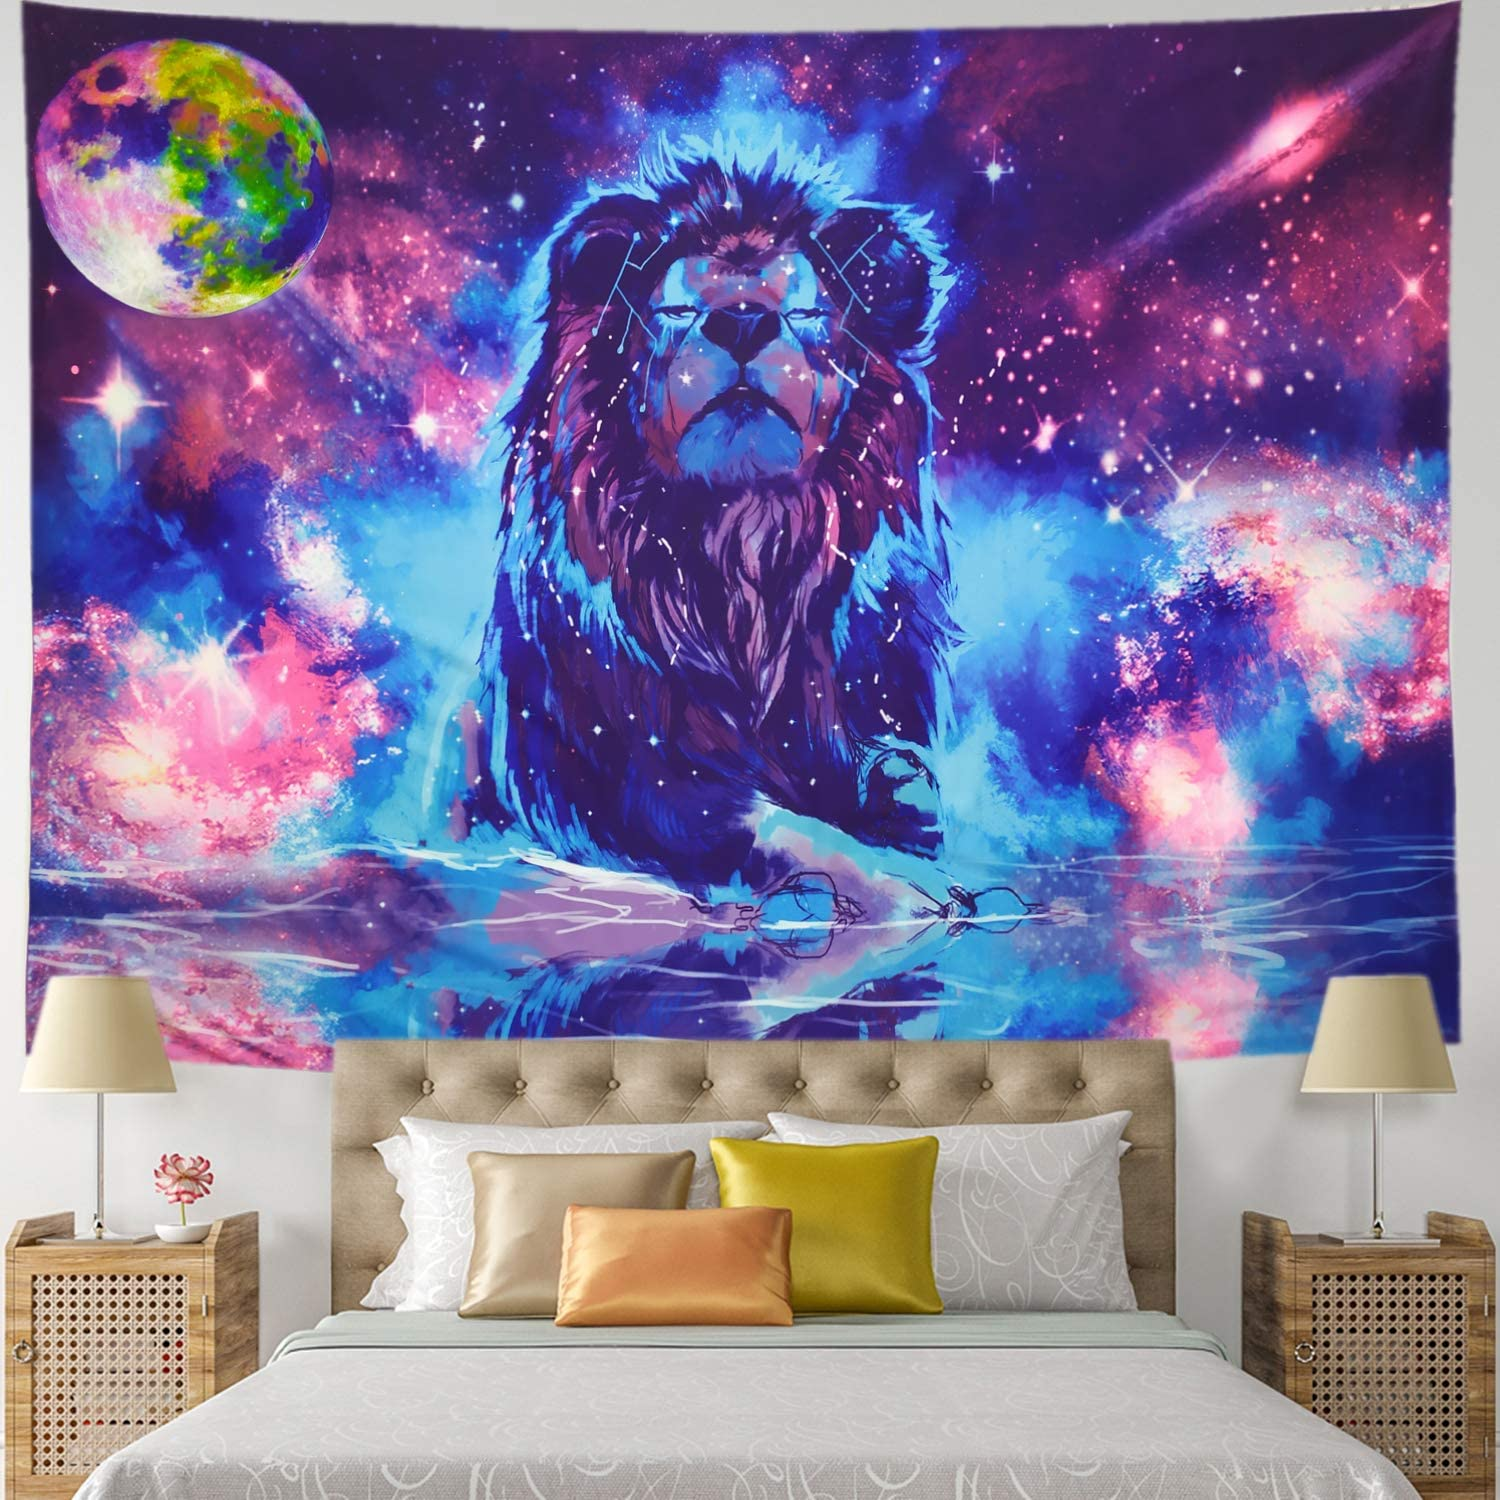 Special Campaign Starry Fantasy Lion Tapestry Psychedelic Moon Outlet sale feature Wall